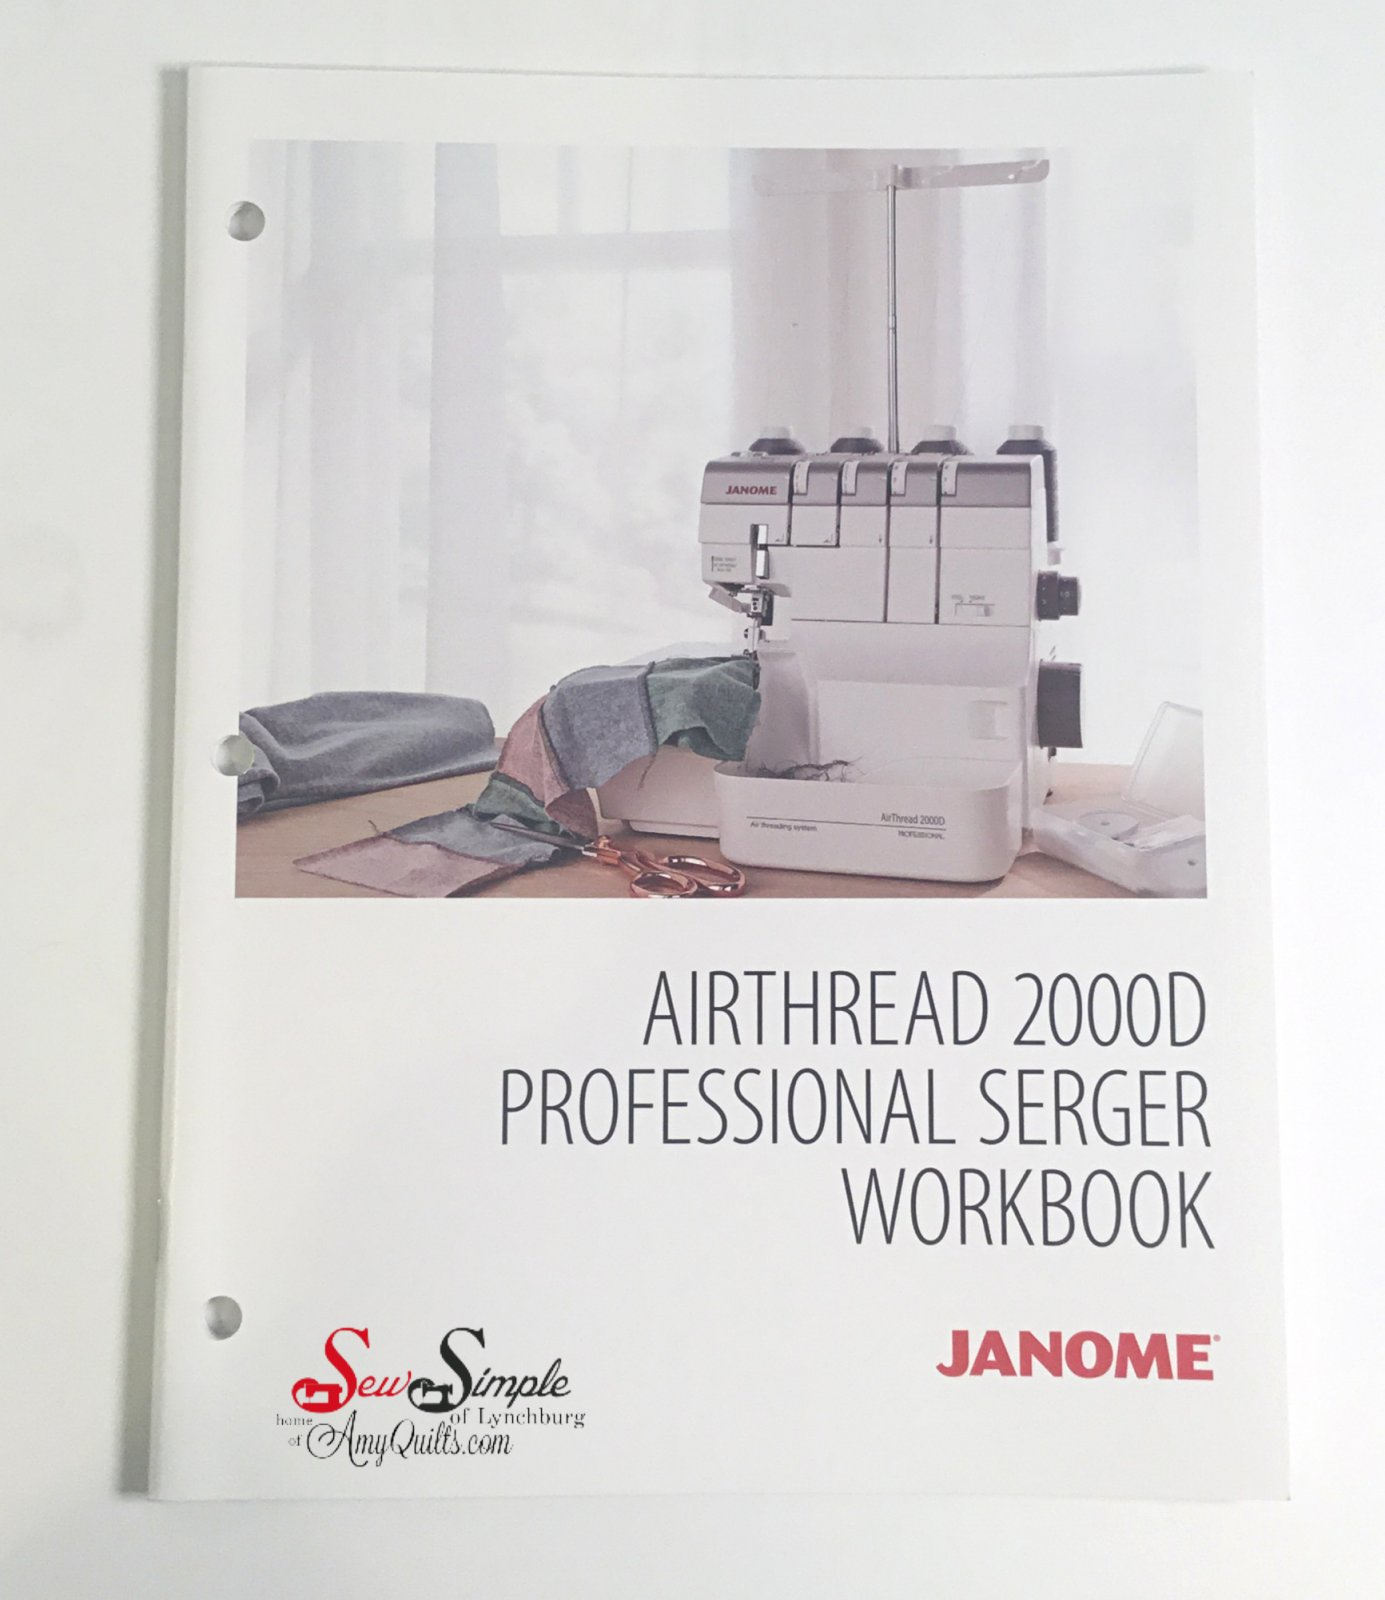 Janome AT2000D Workbook